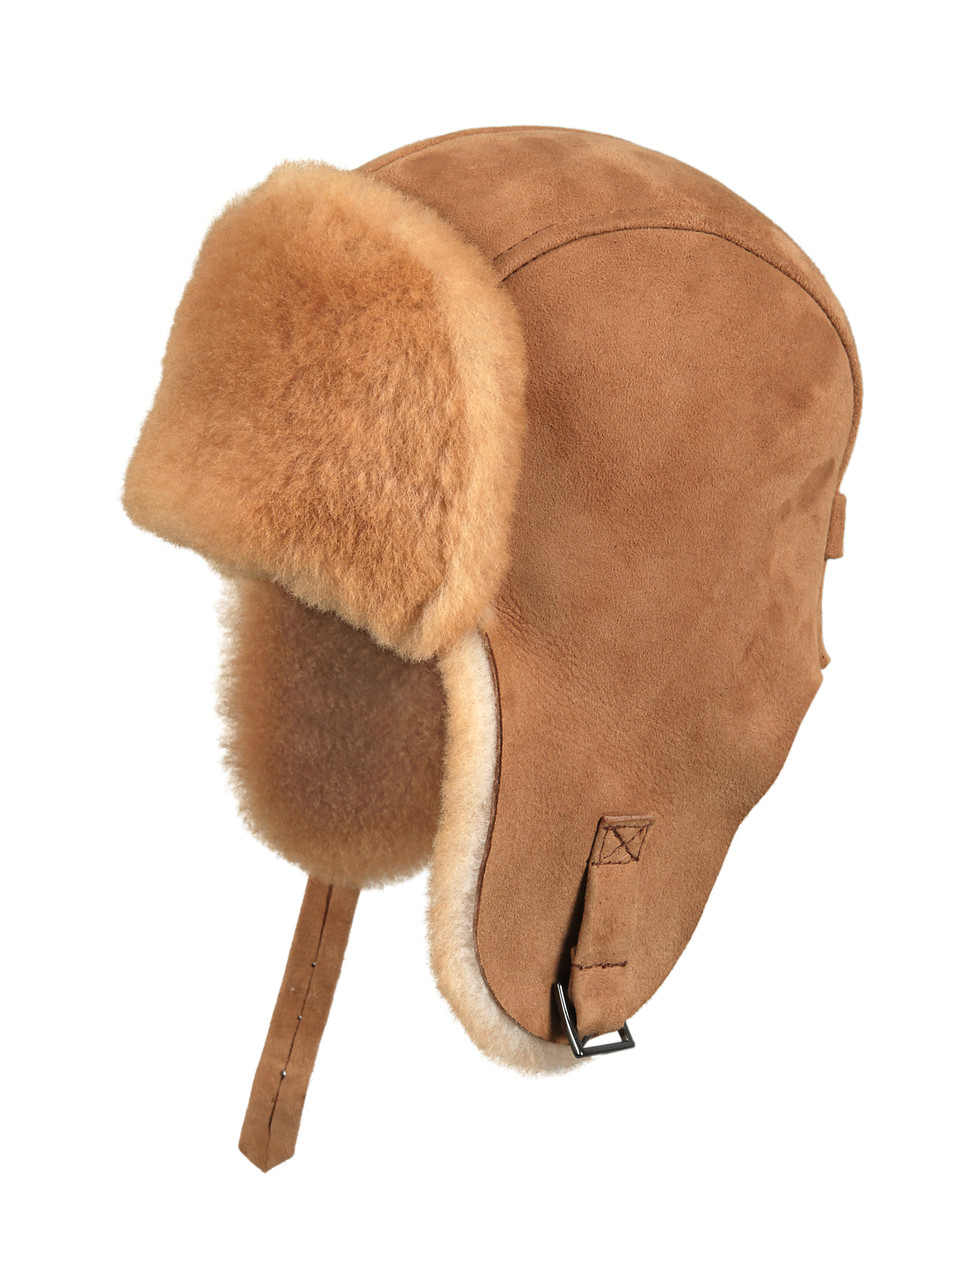 bb89cbffbdb90 ... Shearling Sheepskin Pilot Winter Fur Hat - Tan. Image 1. Loading zoom